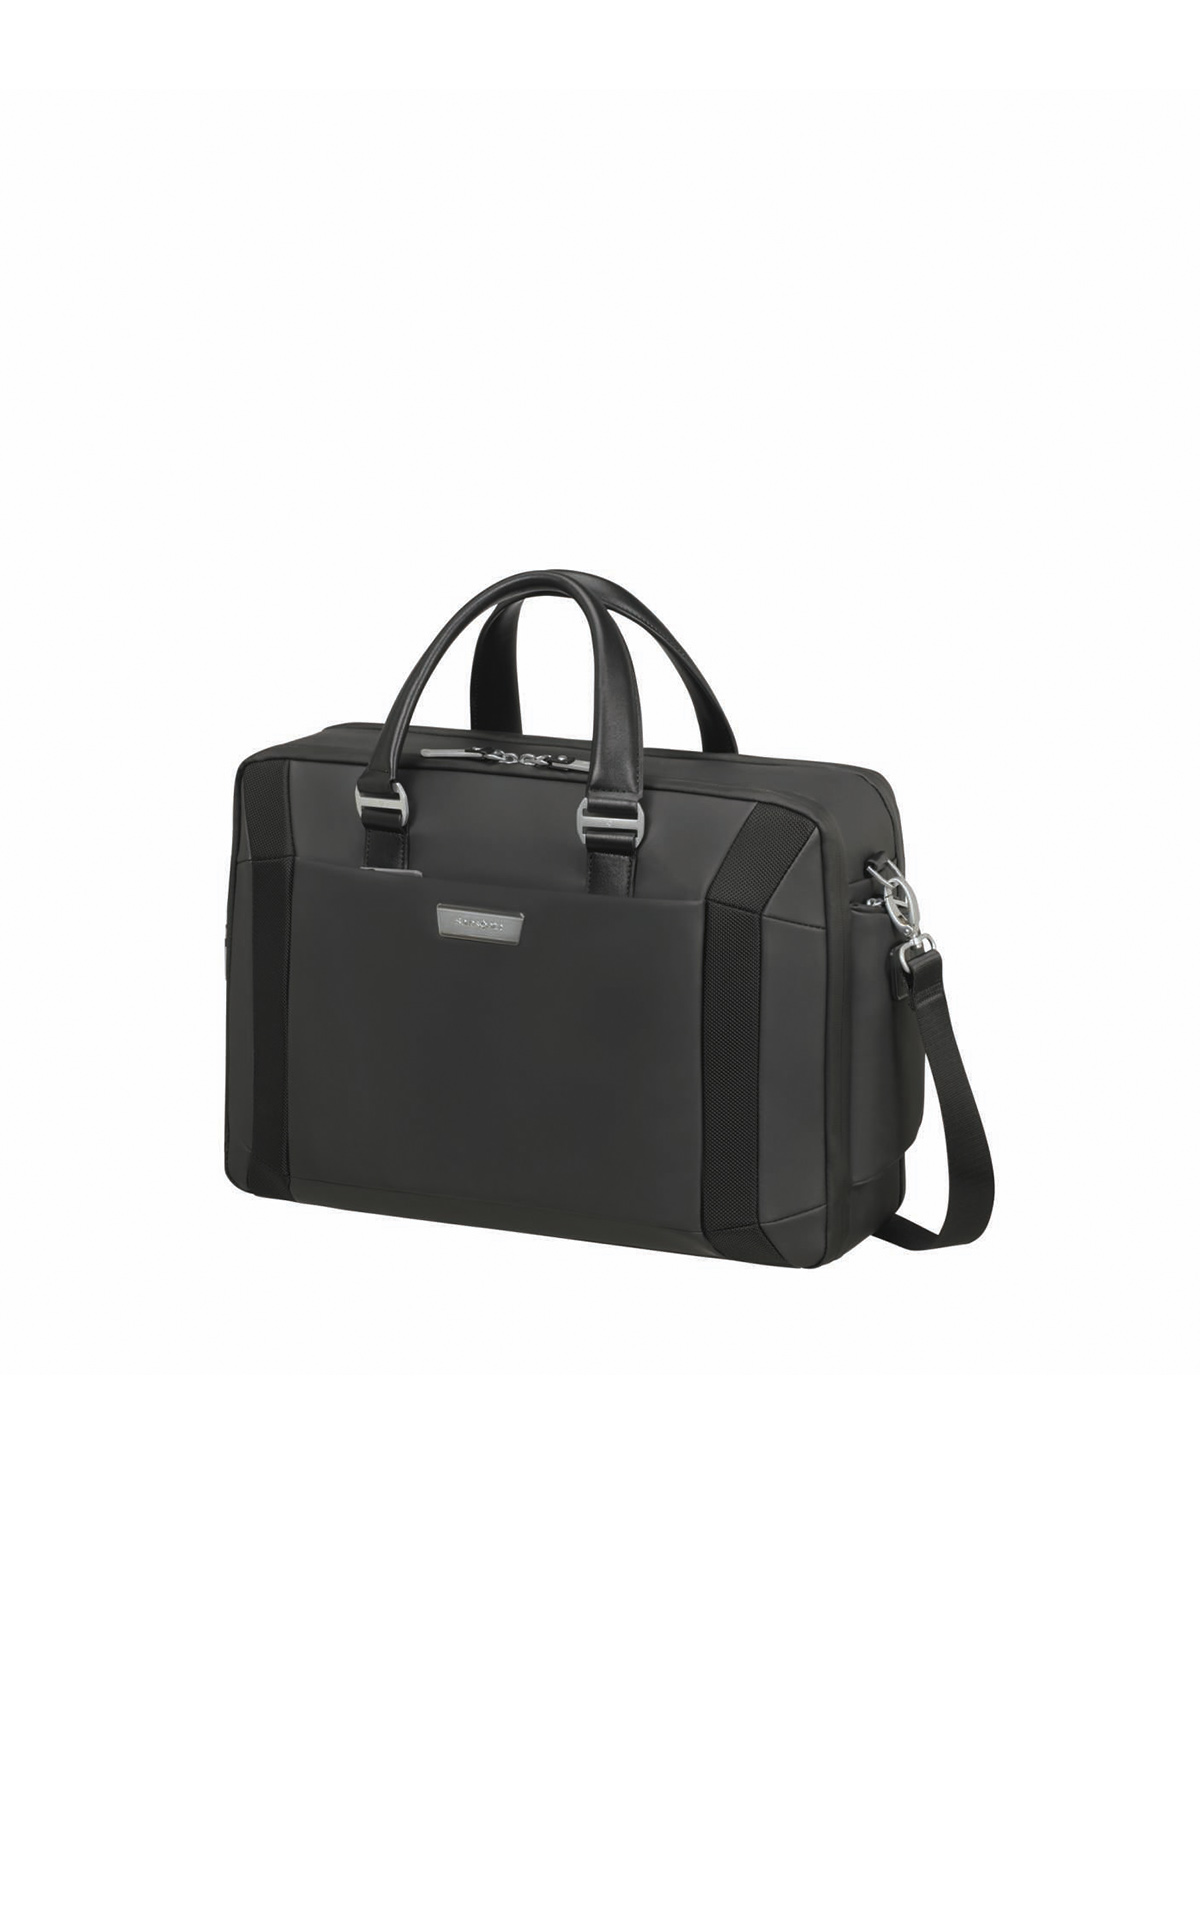 Alubiz Briefcase Samsonite